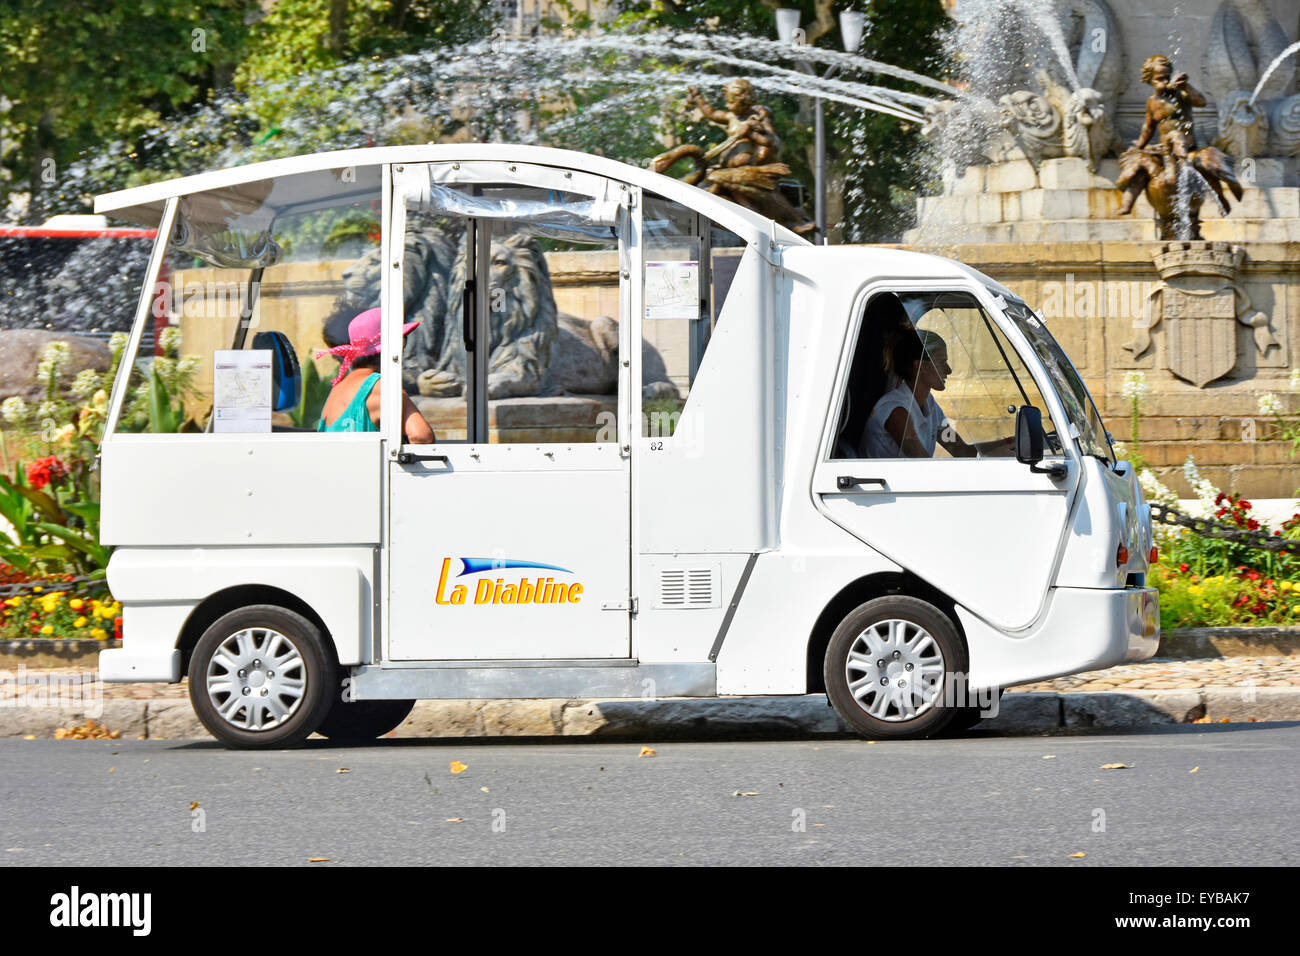 aix en provence france electric car taxi or small bus la diabline stock photo 85687035 alamy. Black Bedroom Furniture Sets. Home Design Ideas